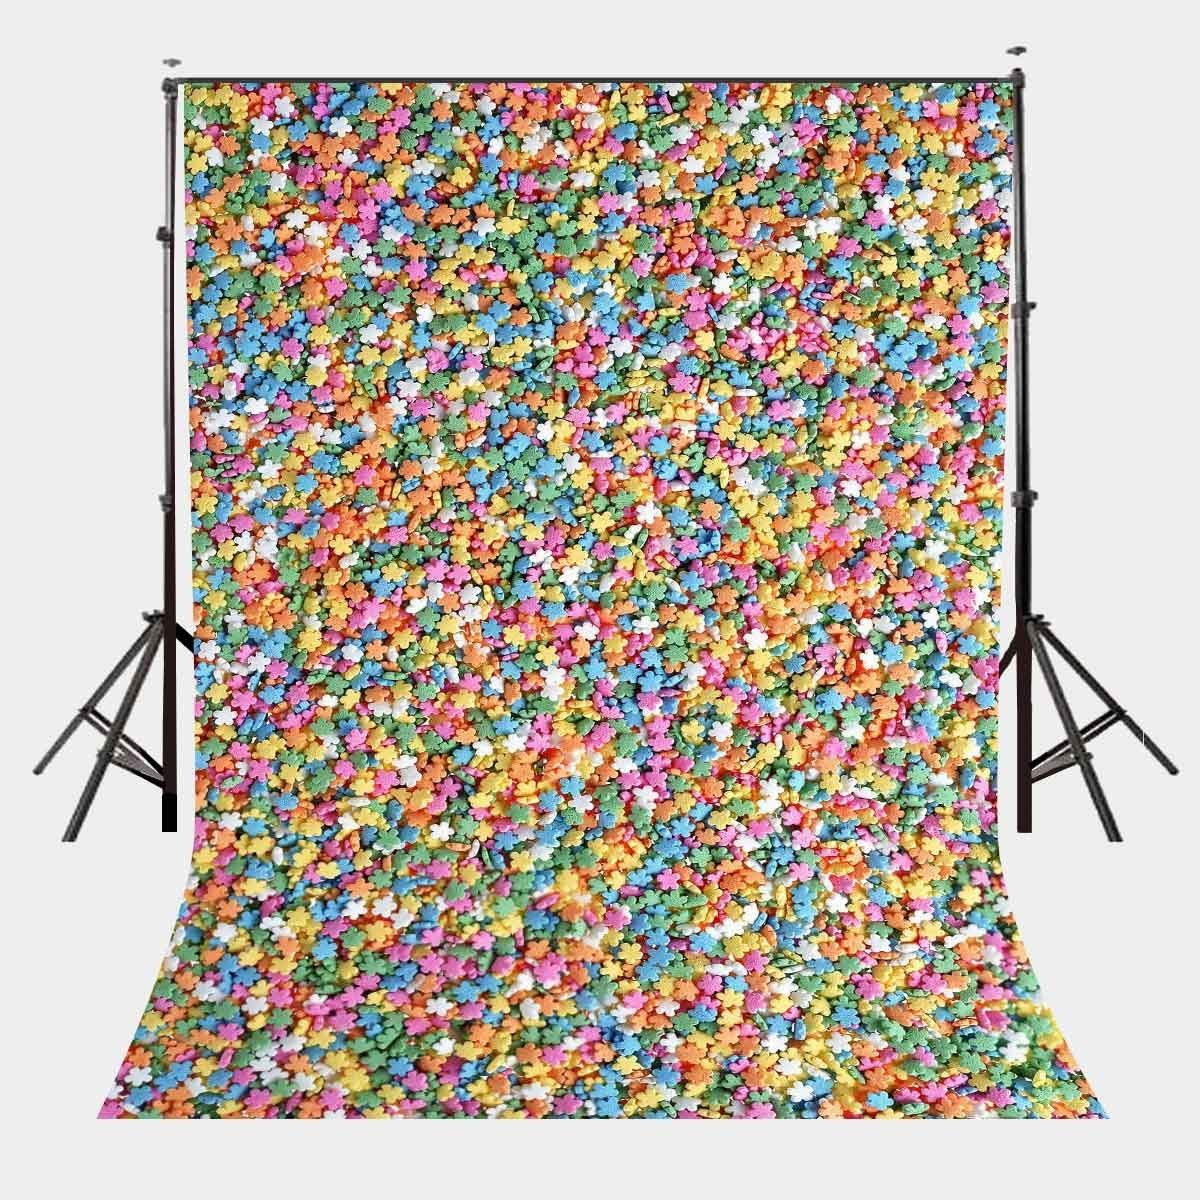 5x7ft Colorful Stars Photography Backdrop Photo Studio Background Props-in Photo Studio Accessories from Consumer Electronics